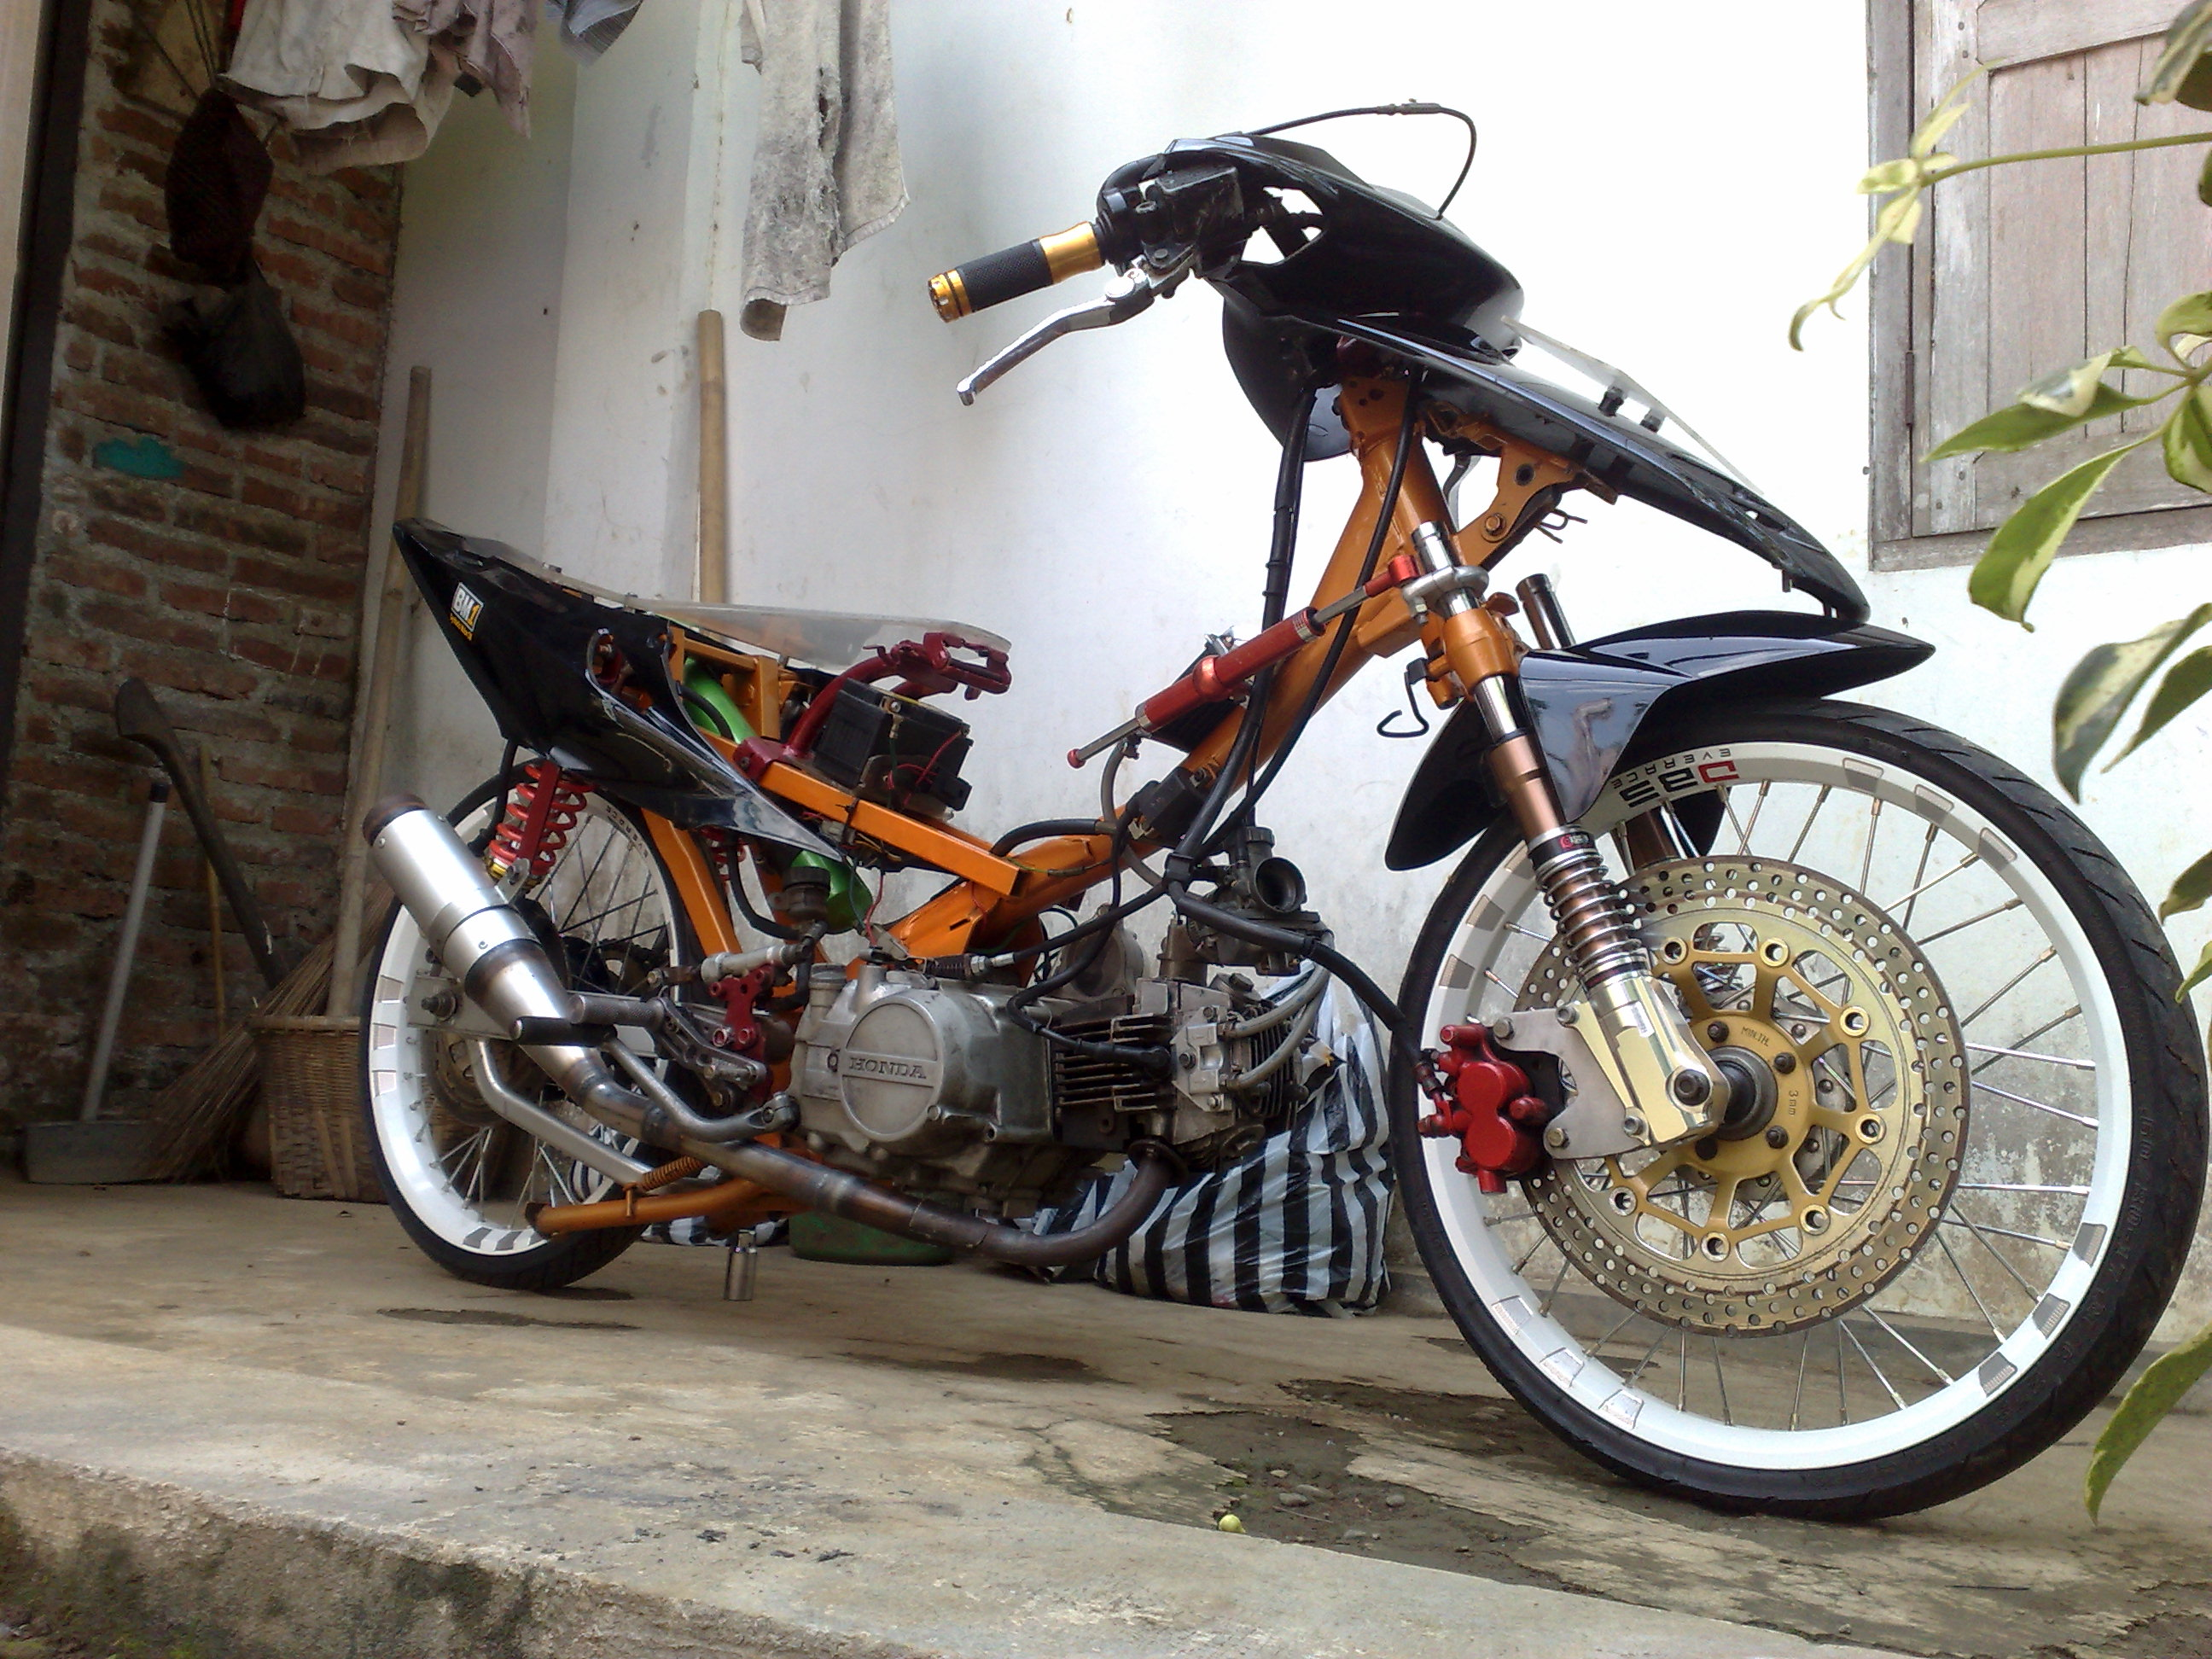 Motor Drag Modifikasi motor drag